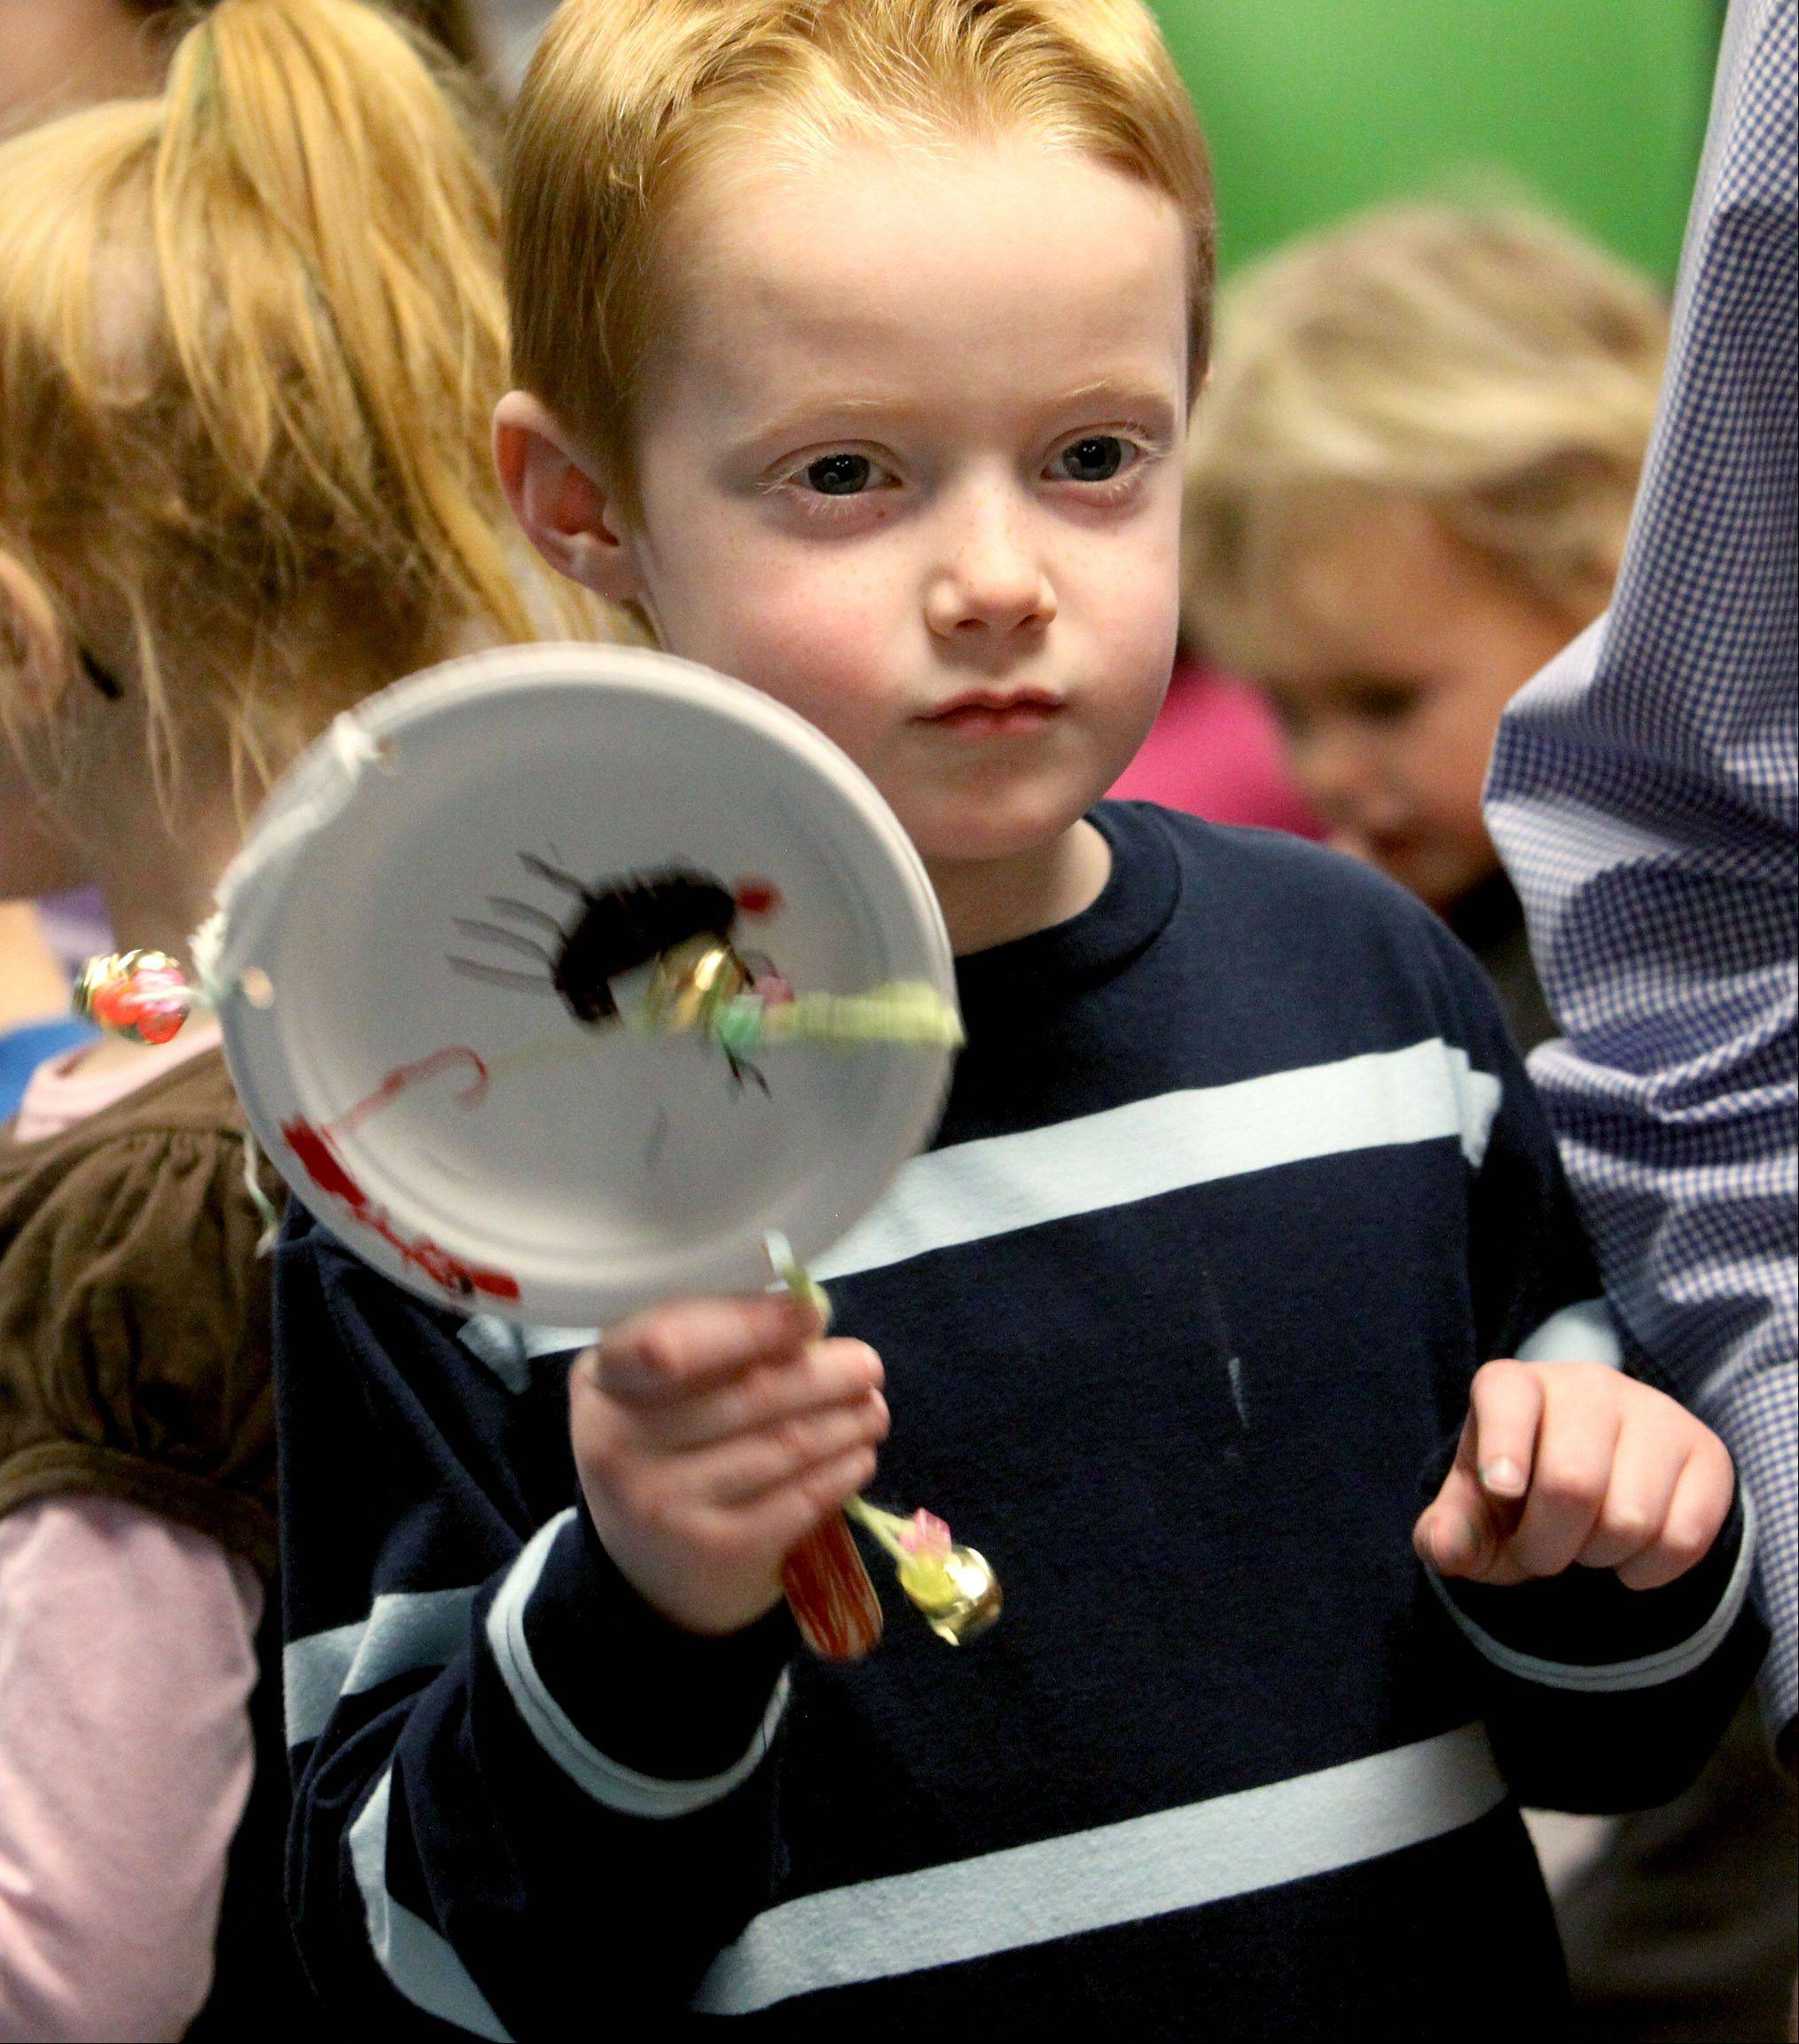 Colin Brady, 5, of Naperville, shakes a homemade noisemaker after the countdown to noon at the 12th annual Bubble Bash at the DuPage Children's Museum in Naperville.